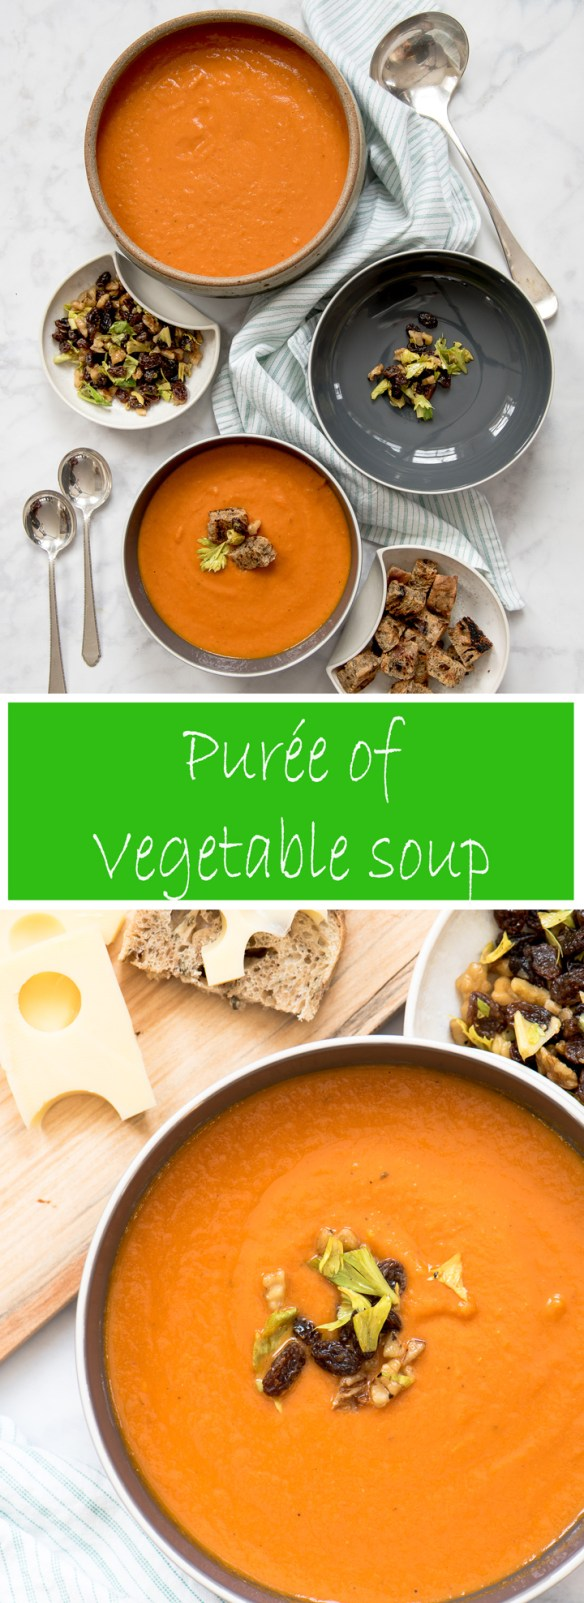 Puree of Vegetable Soup, an easy recipe with bright fresh vegetable flavor.